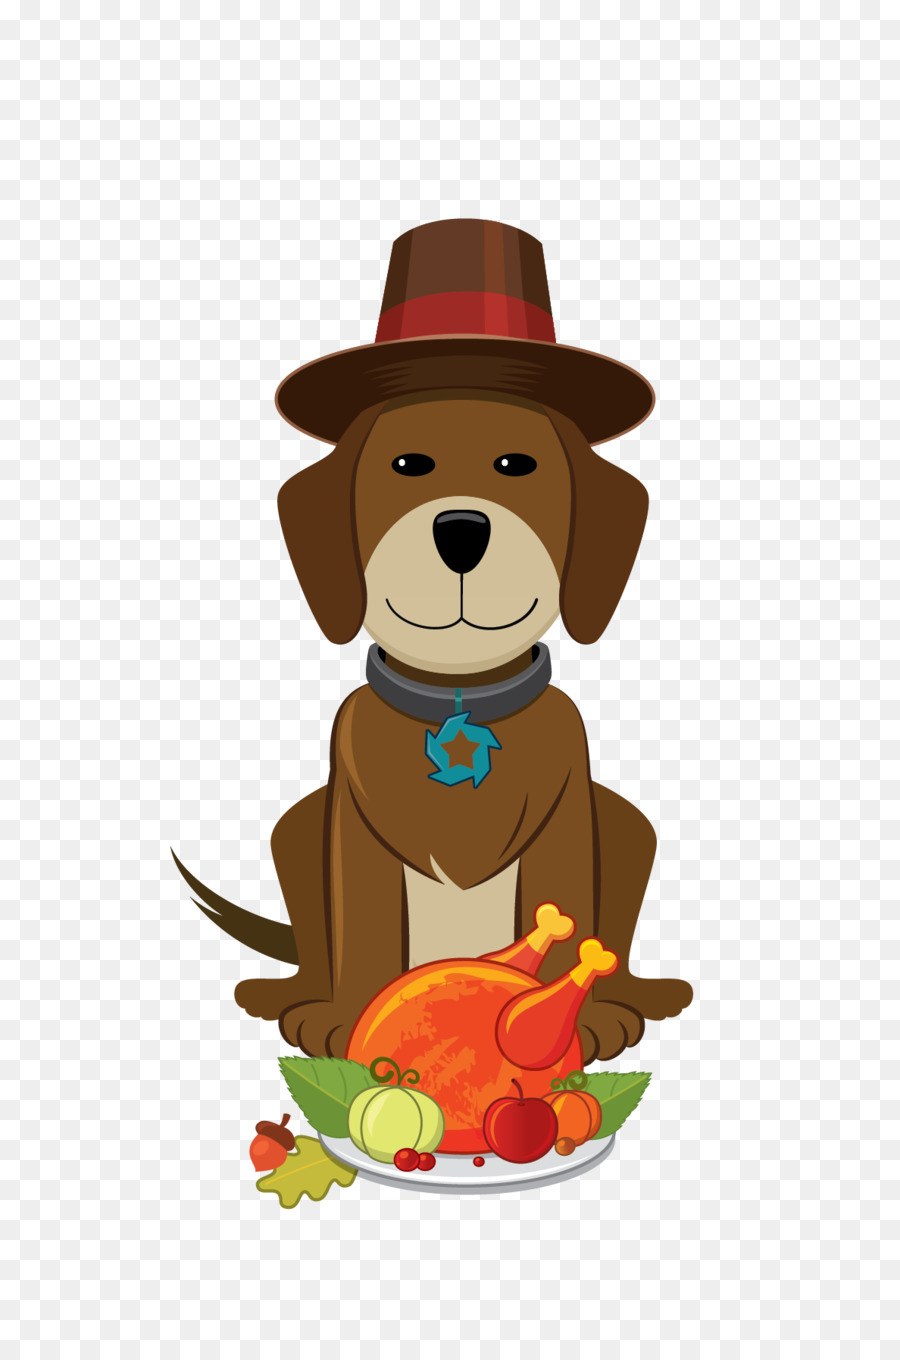 Halloween Thanksgiving Christmas Clipart.Dog Thanksgiving Day Christmas Clip Art Pets Halloween